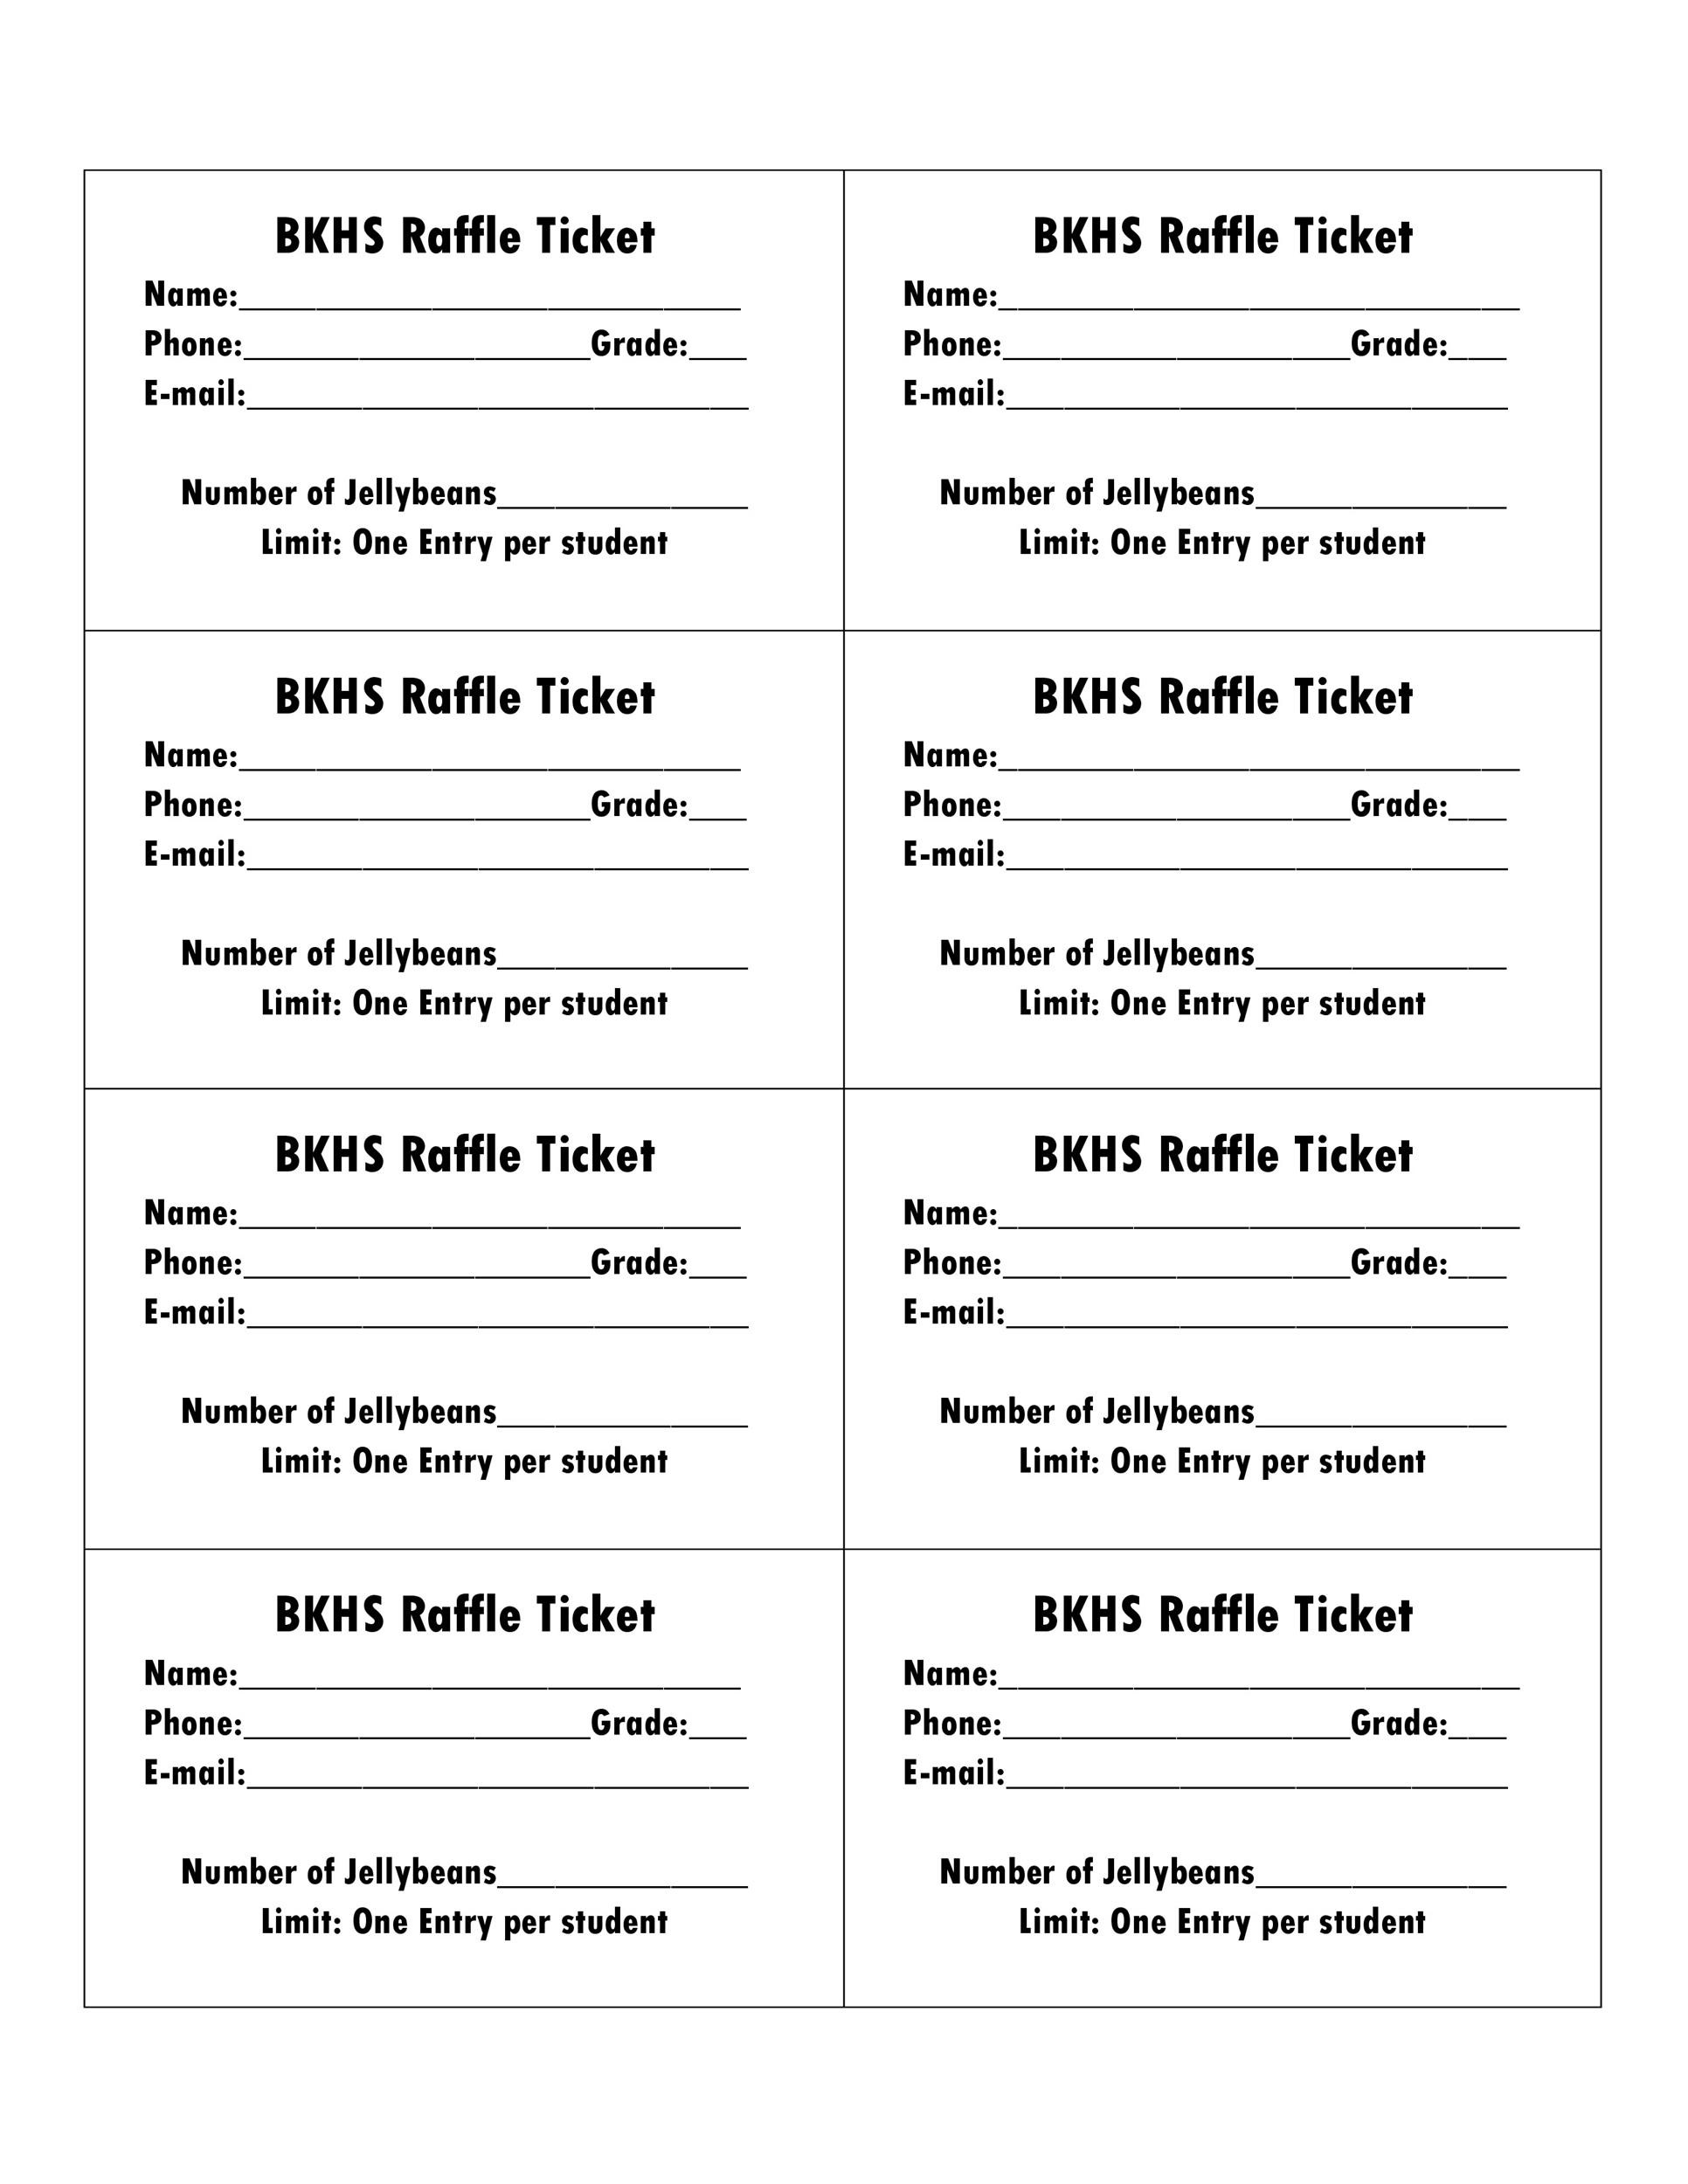 sample raffle tickets printable - Hizir kaptanband co